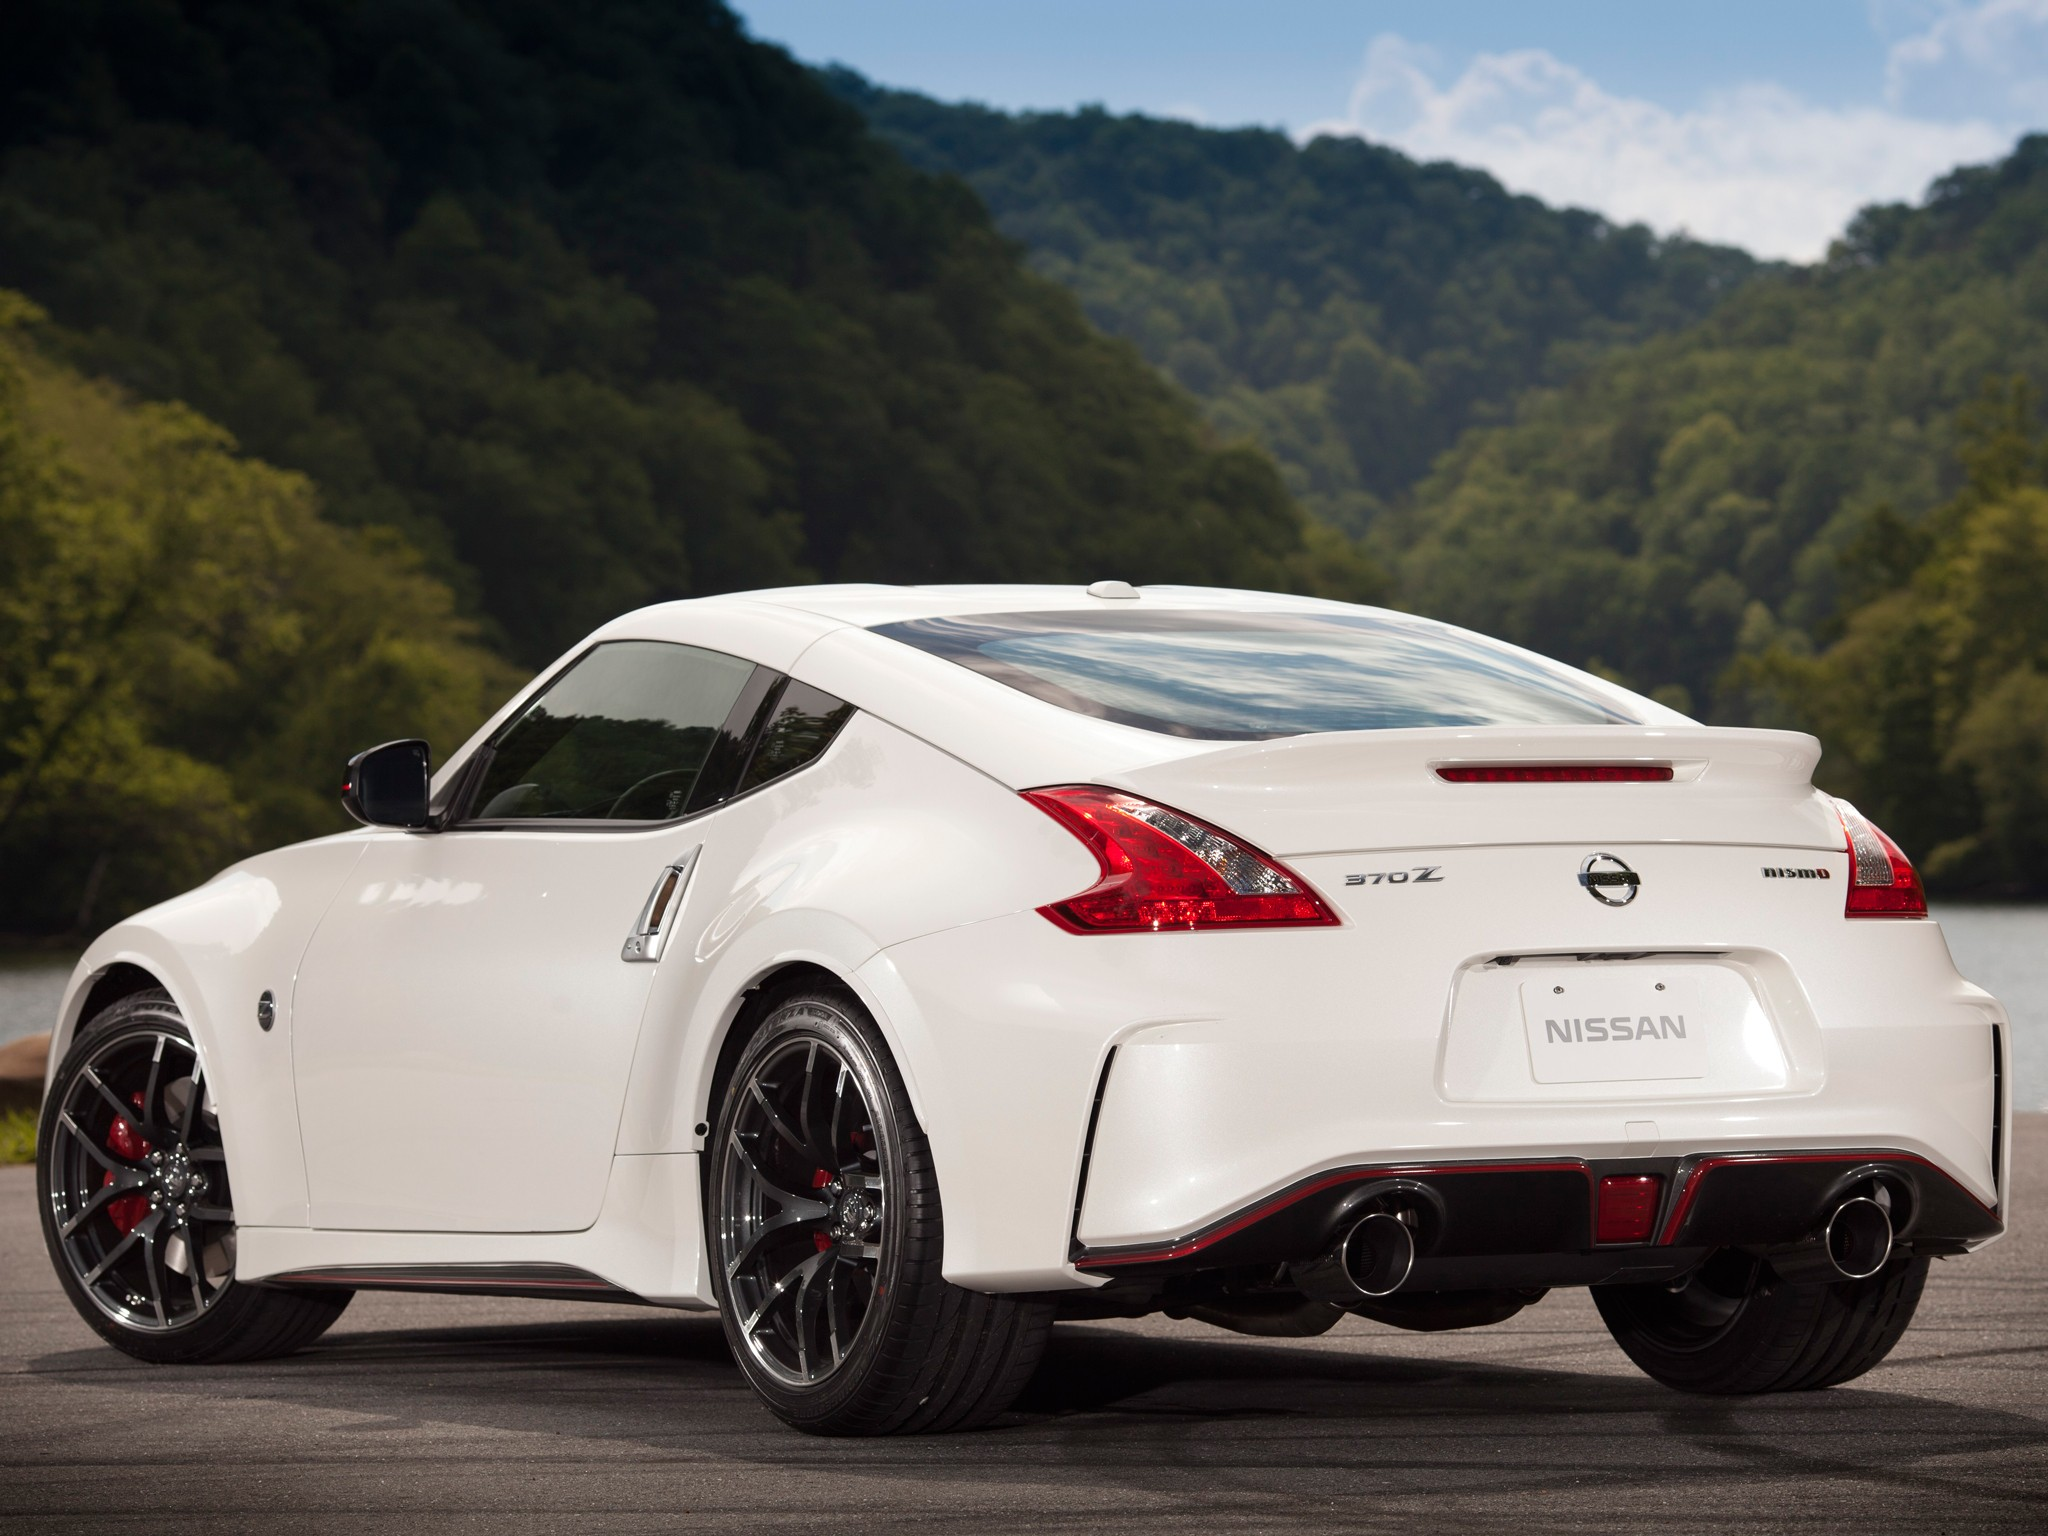 nissan 370z nismo specs 2014 2015 2016 2017 2018. Black Bedroom Furniture Sets. Home Design Ideas